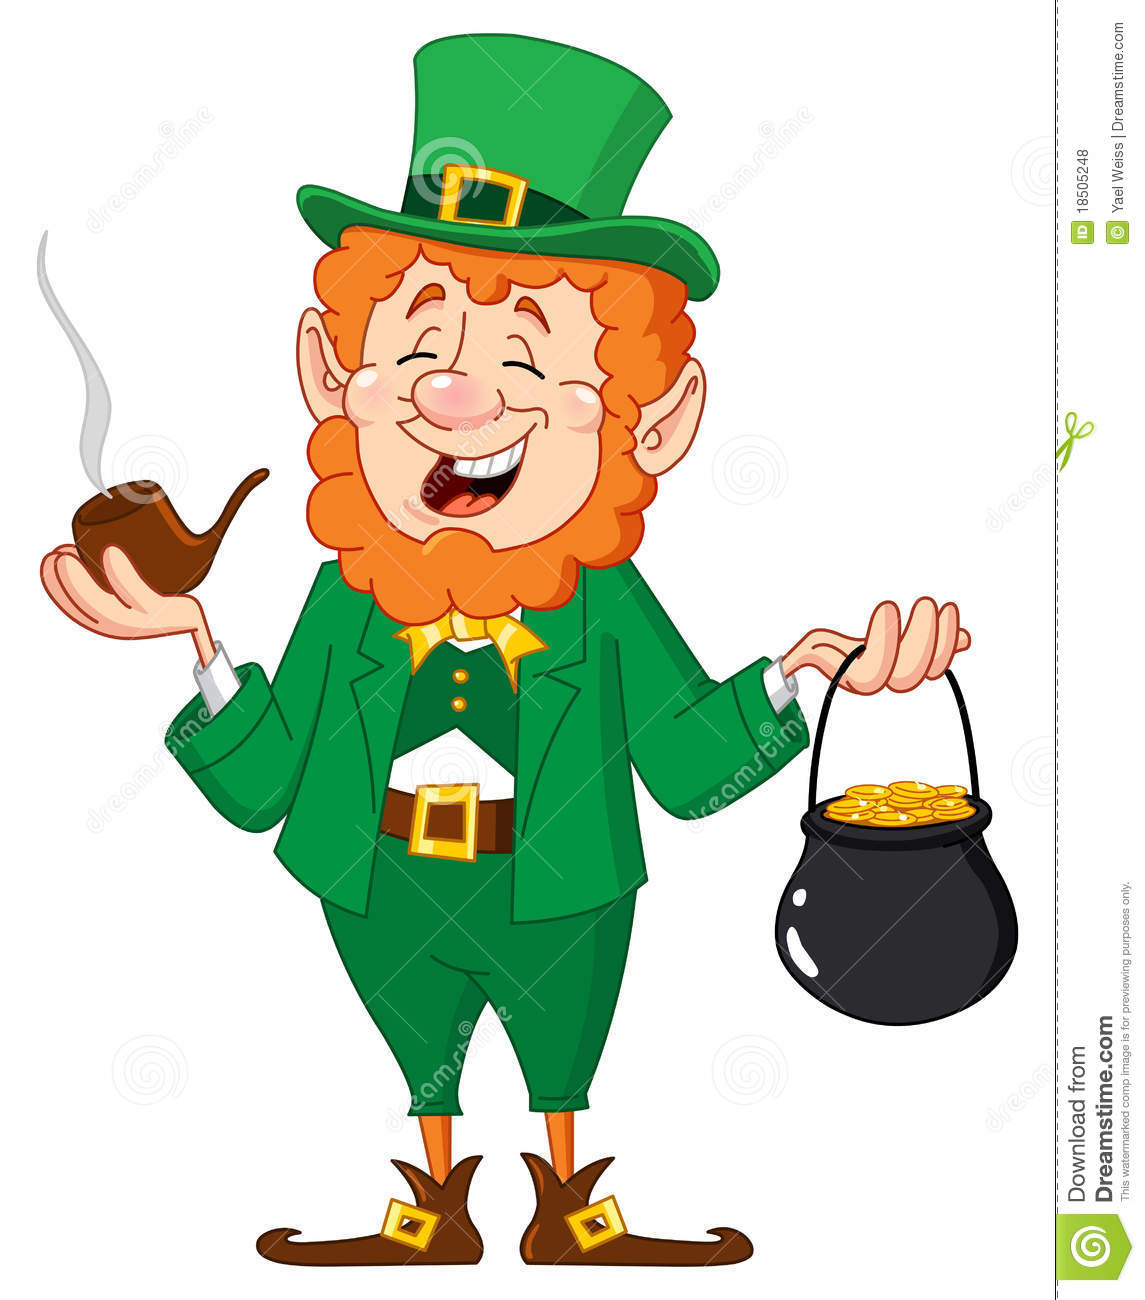 Leprechaun Royalty Free Stock Photos - Image: 18505248